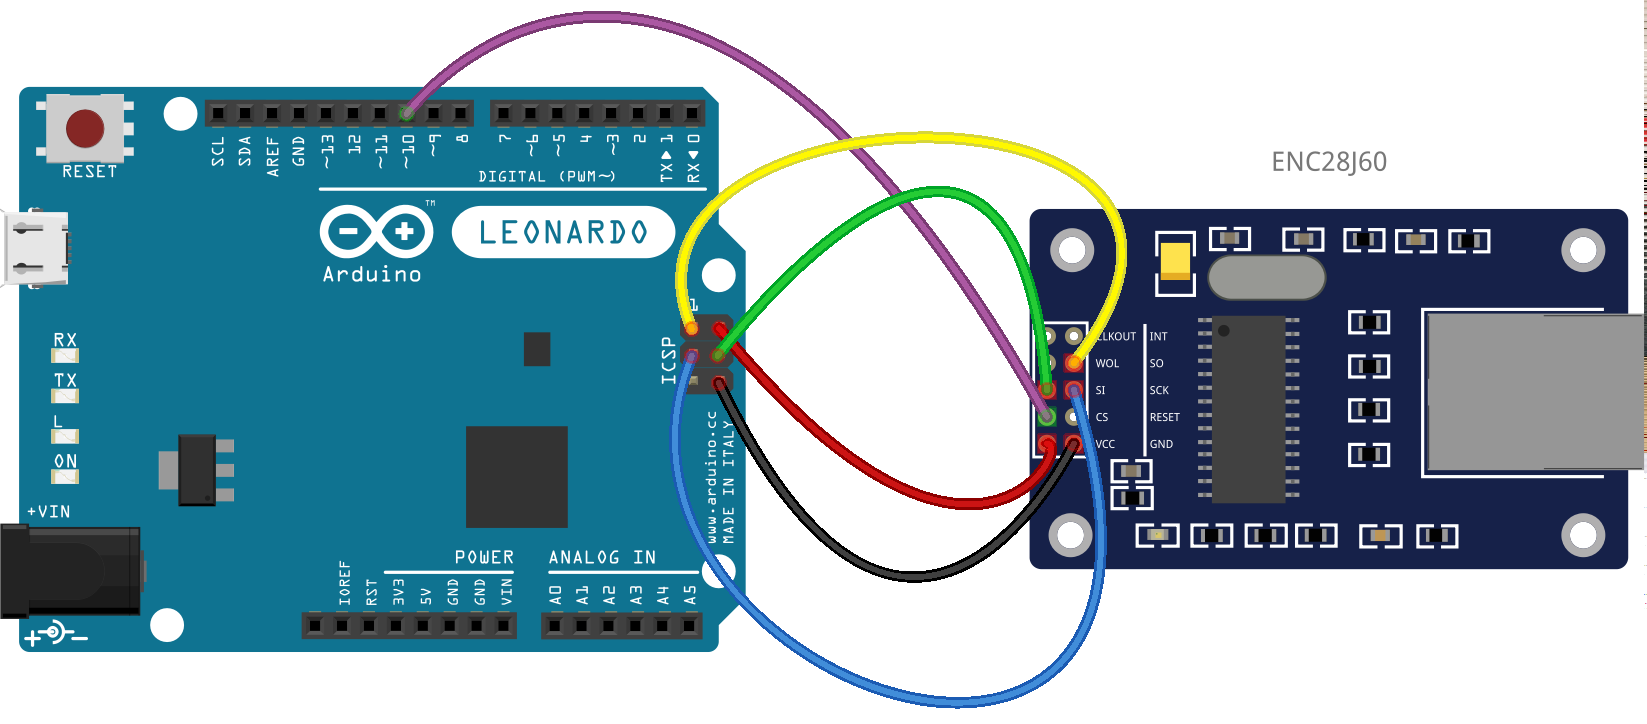 Arduino Uno Wiring Diagram Leonardo And Spi Communications Enc28j60